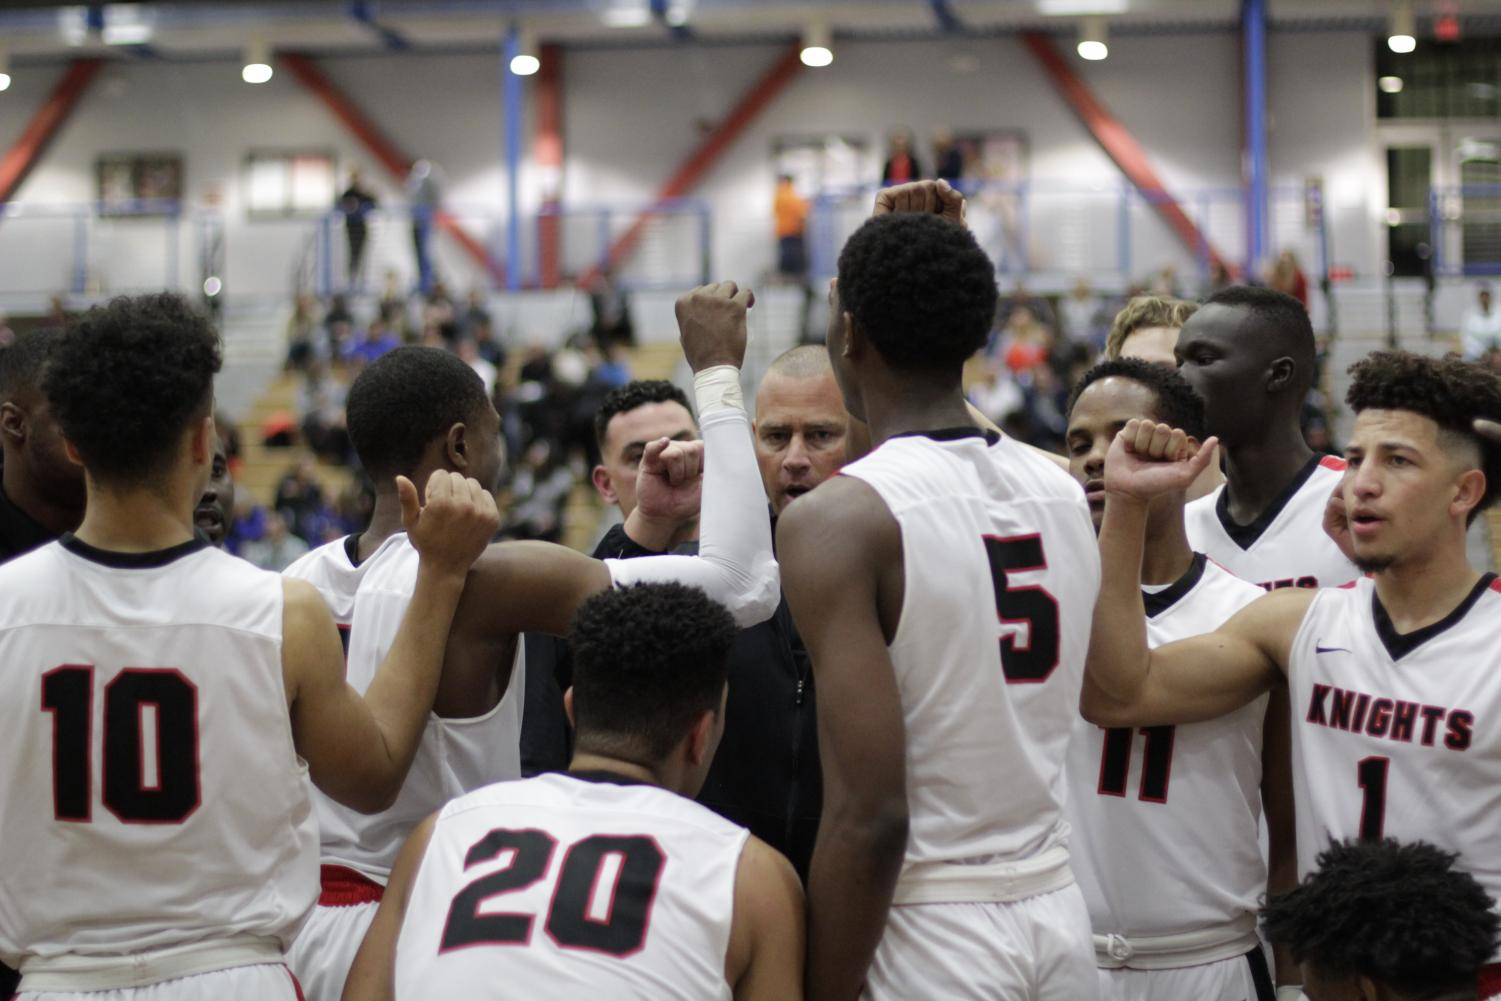 Head Coach Mitch Charlens encouraging his players during half-time against their game to the Pirates of Ventura College at the Harry West Gymnasium.